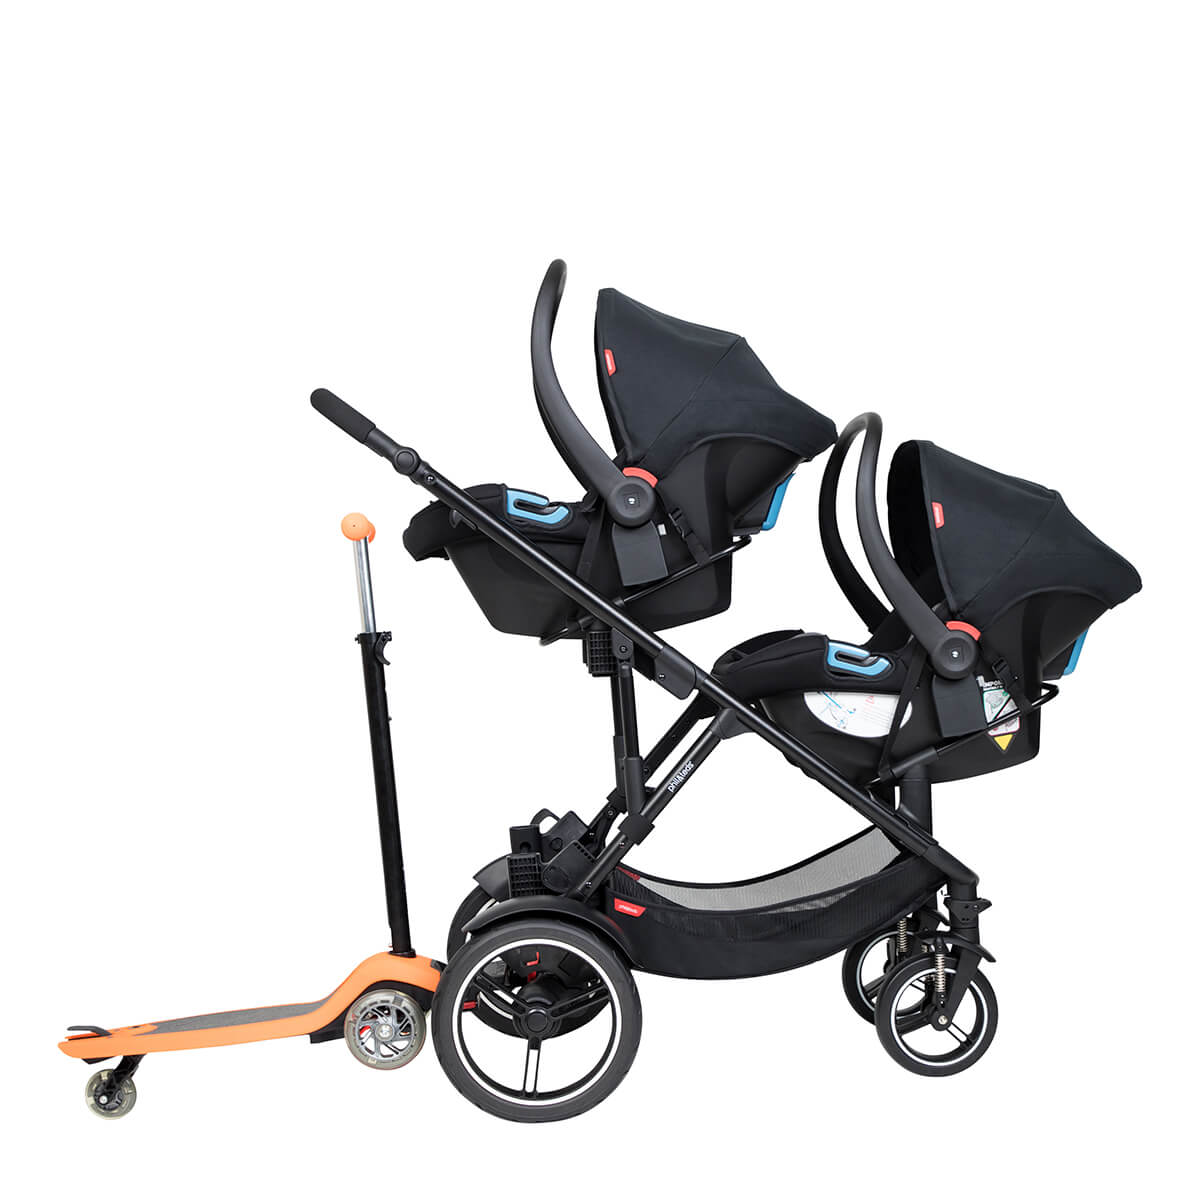 https://cdn.accentuate.io/4513464057952/19440482418872/philteds-voyager-buggy-with-double-travel-systems-and-freerider-stroller-board-in-the-rear-v1626486729157.jpg?1200x1200